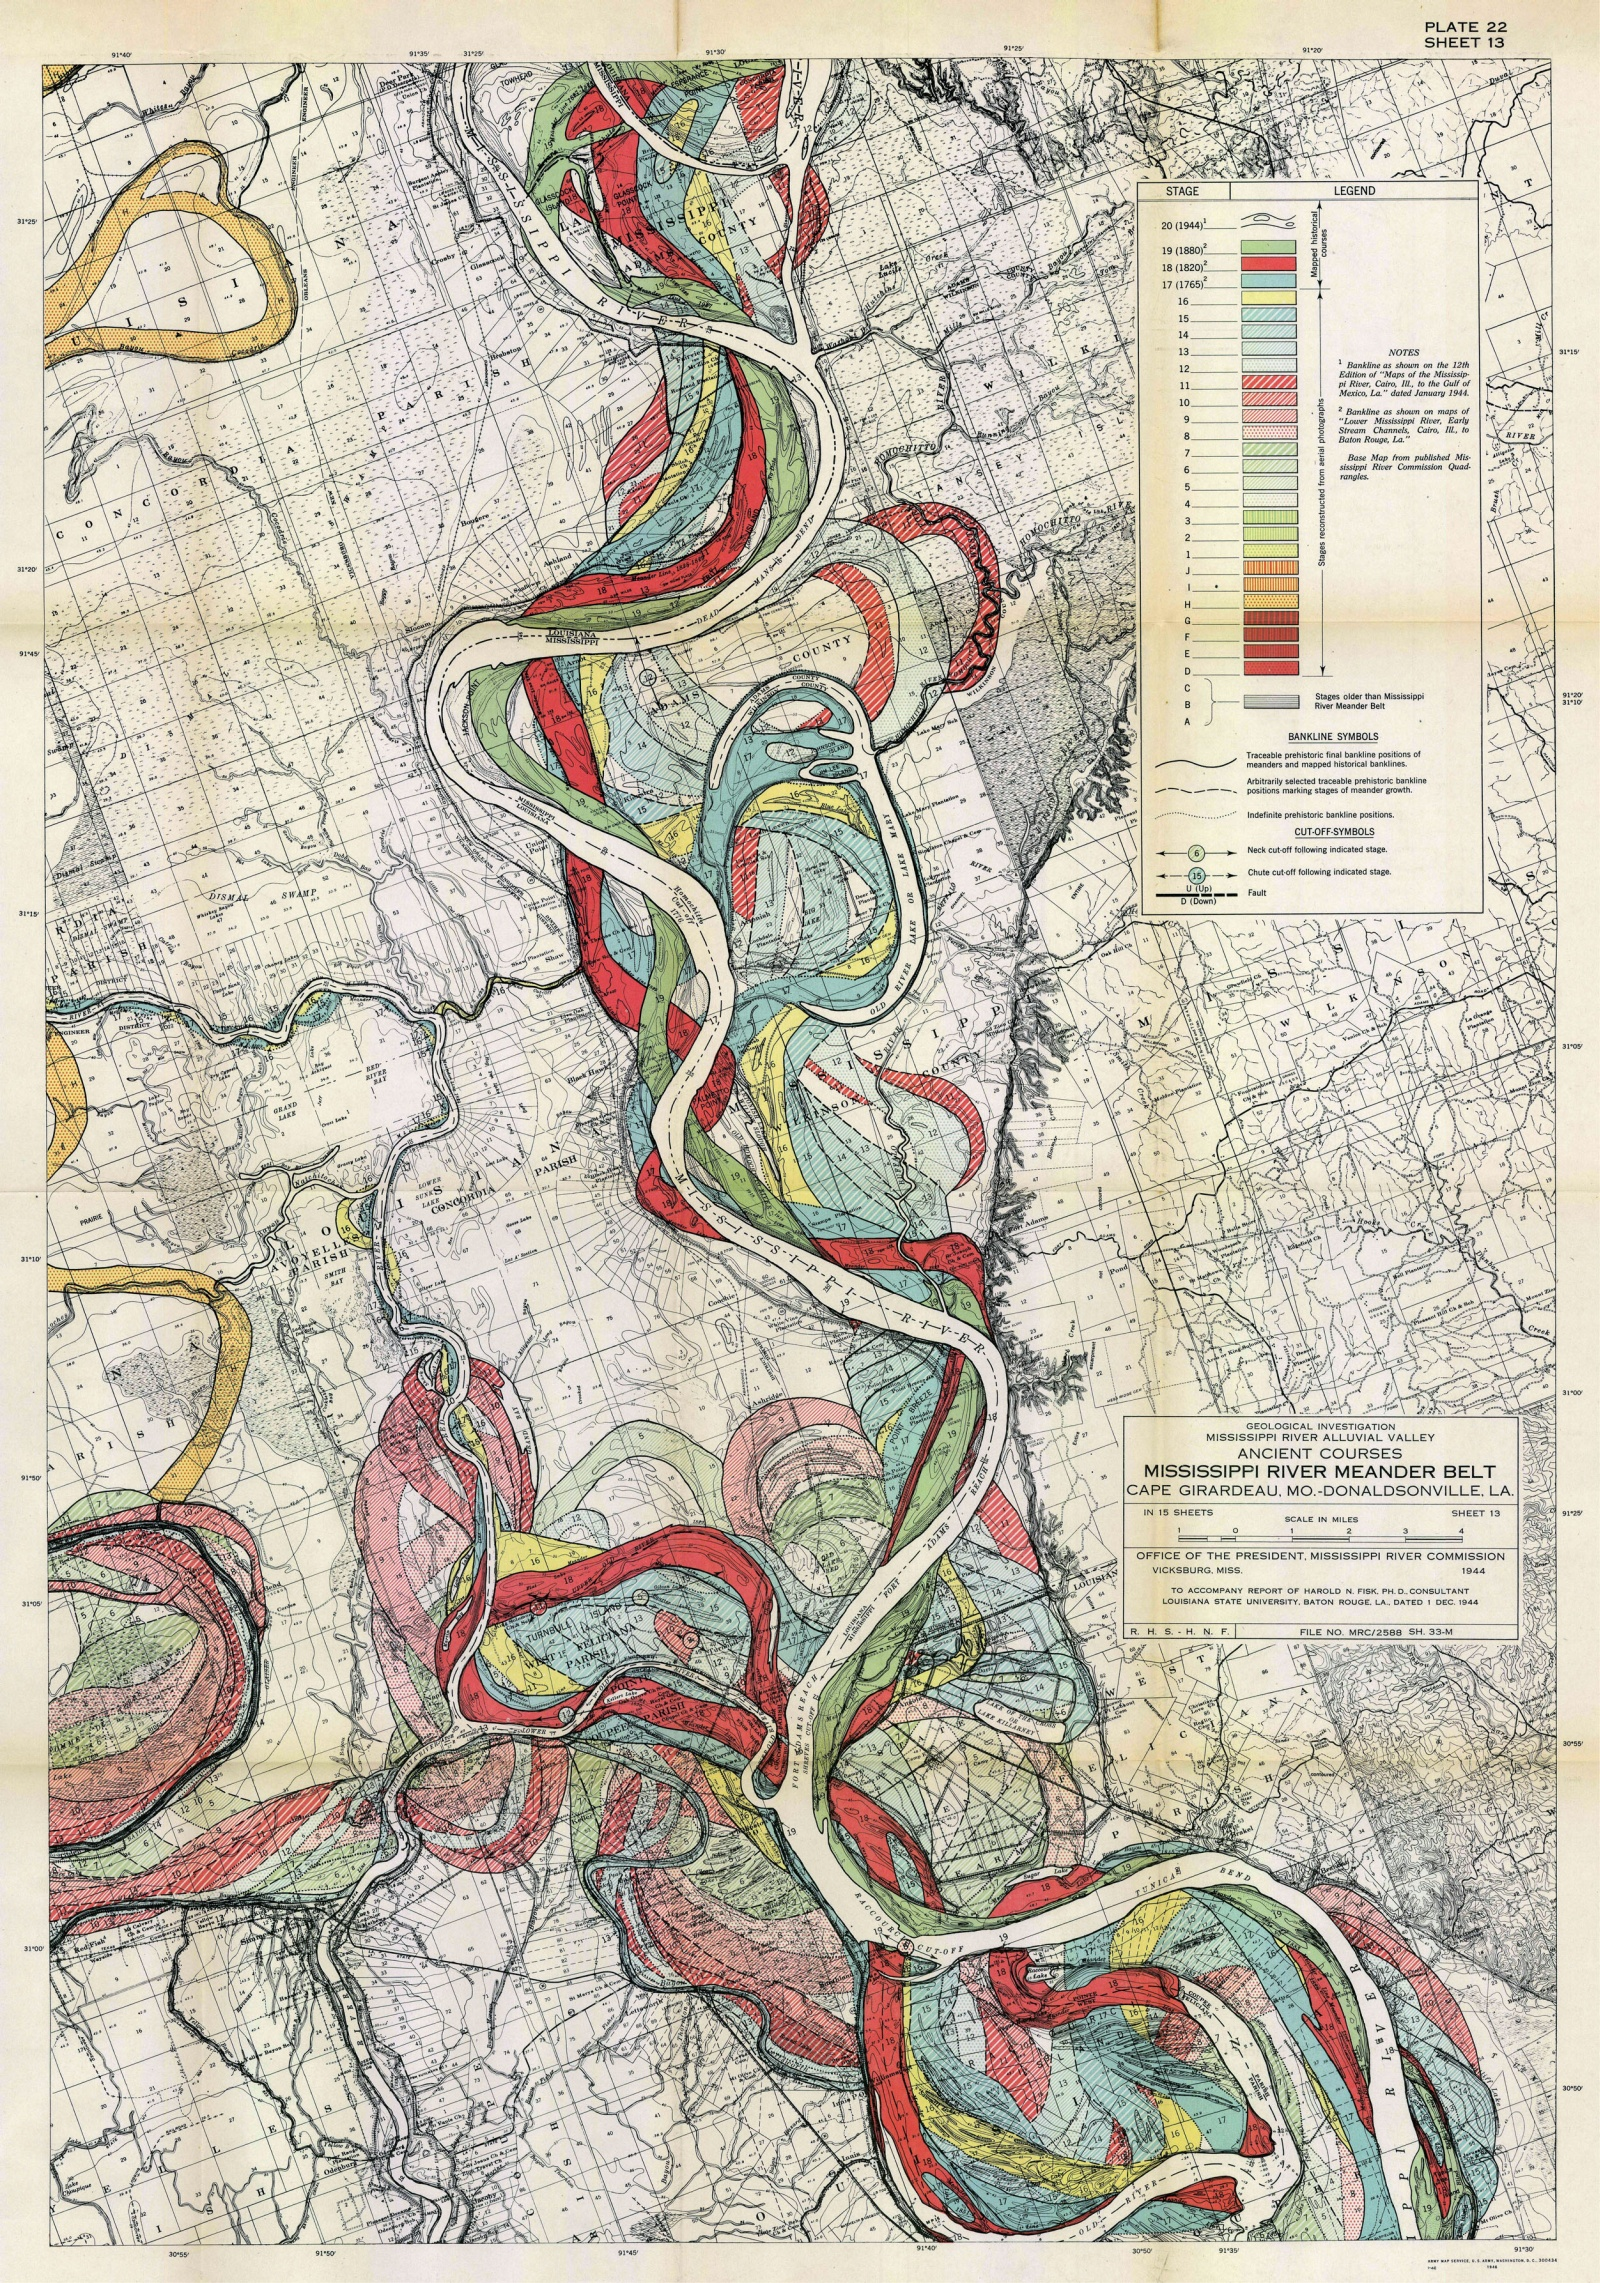 how-the-paths-of-the-mississippi-changed-in-the-past-2